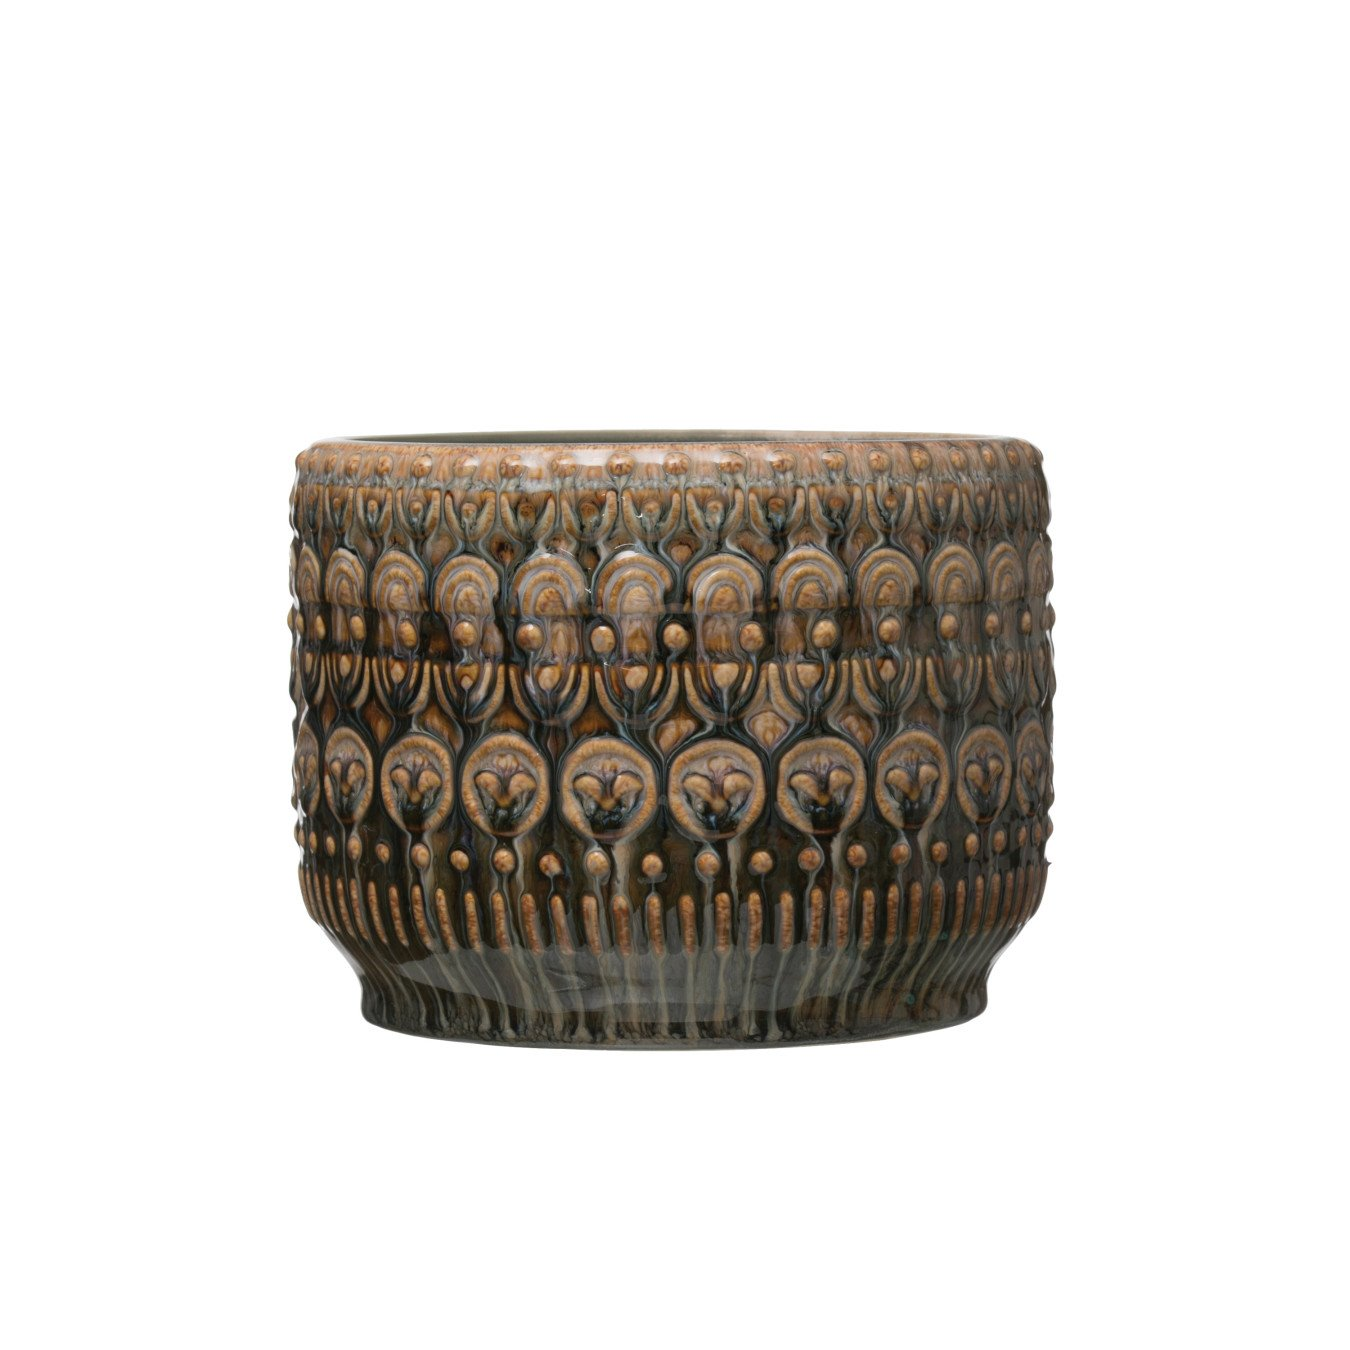 "8"" Round Embossed Stoneware Planter with Reactive Glaze Finish (Holds 7"" pot/Each one will vary)"